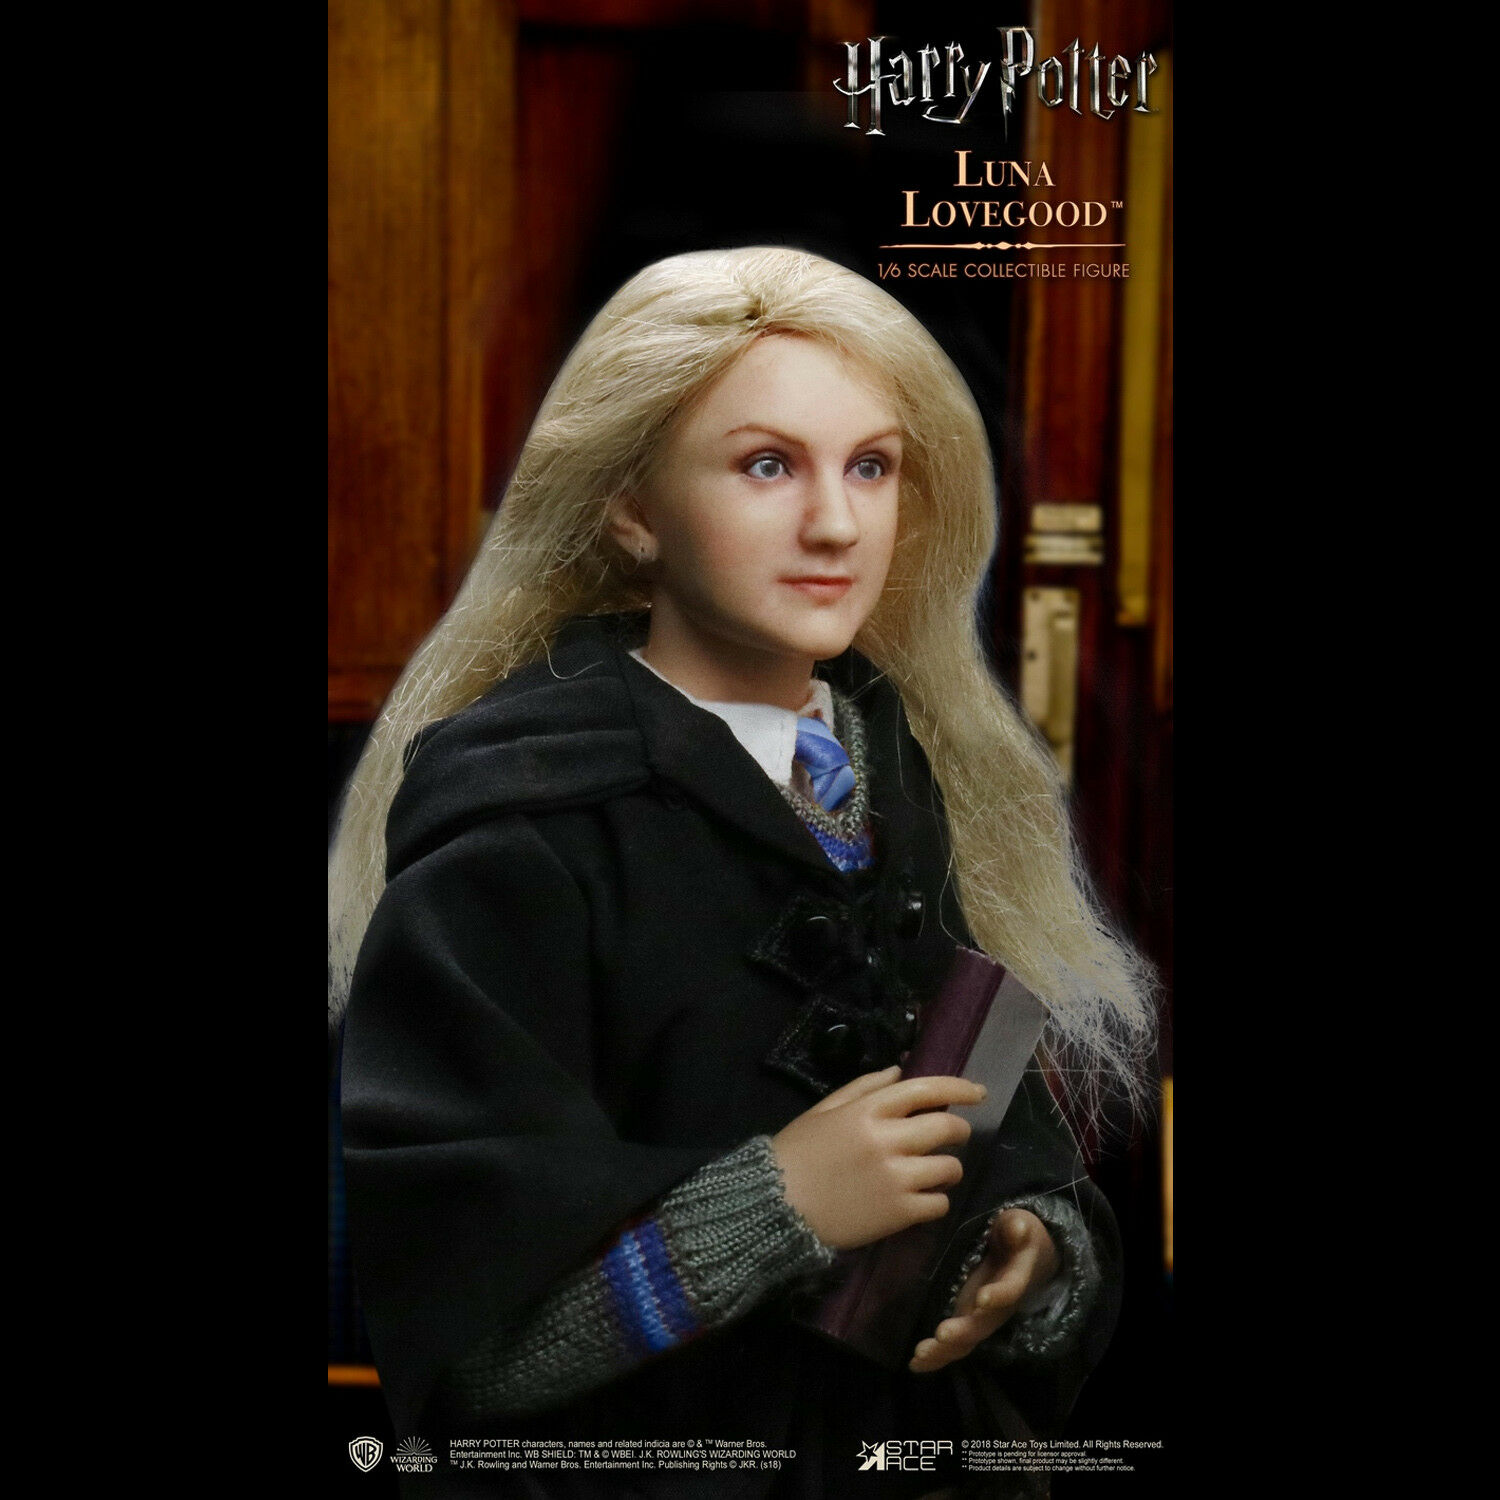 Star Ace Toys SA0062 Harry Potter 1/6 Scale Luna Lovegood Action Figure